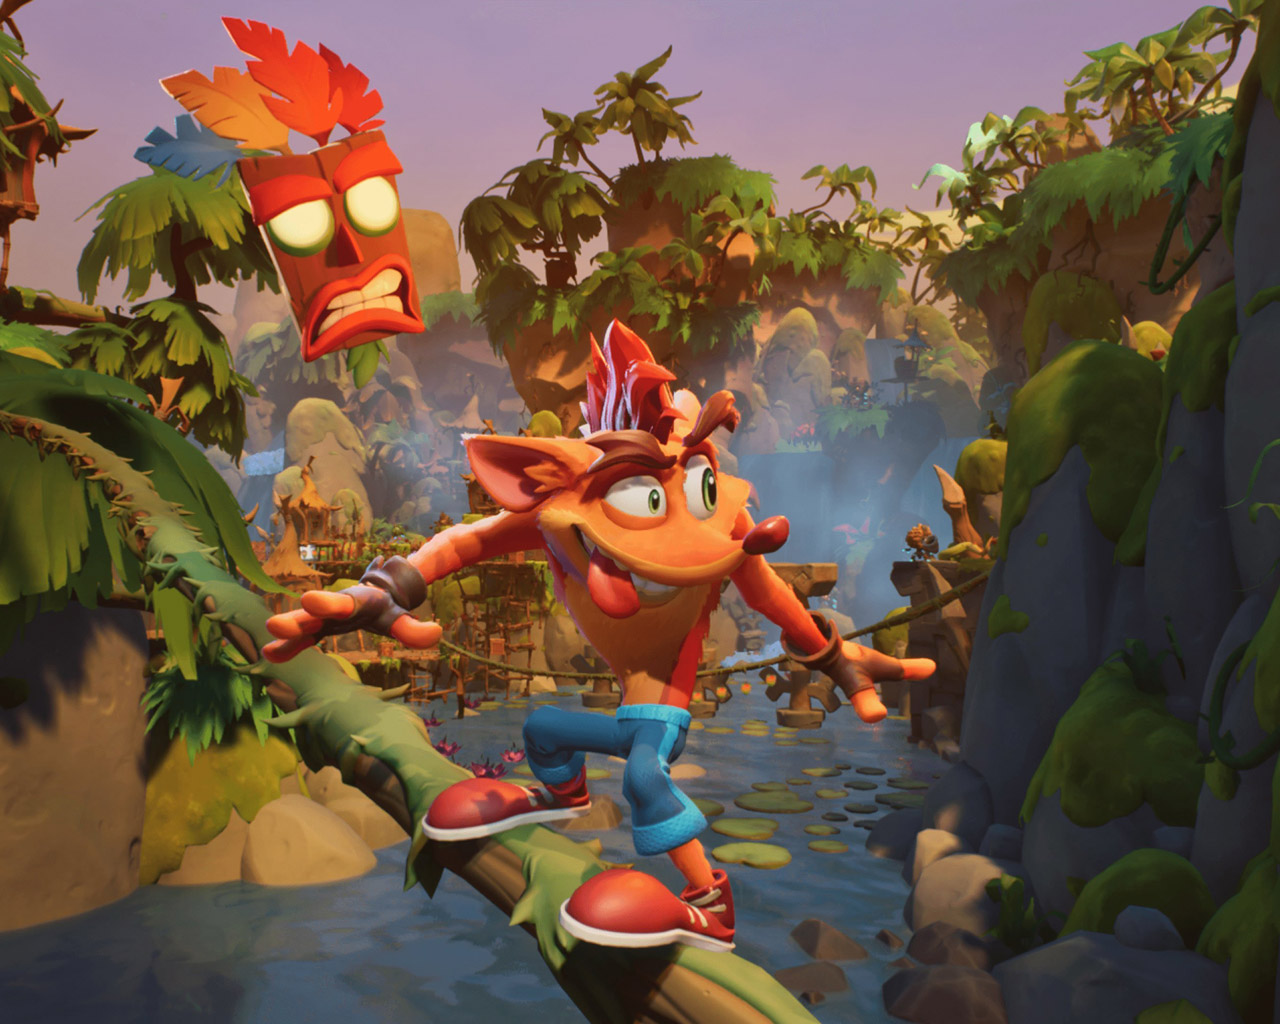 Crash Bandicoot 4: It's About Time Wallpaper in 1280x1024